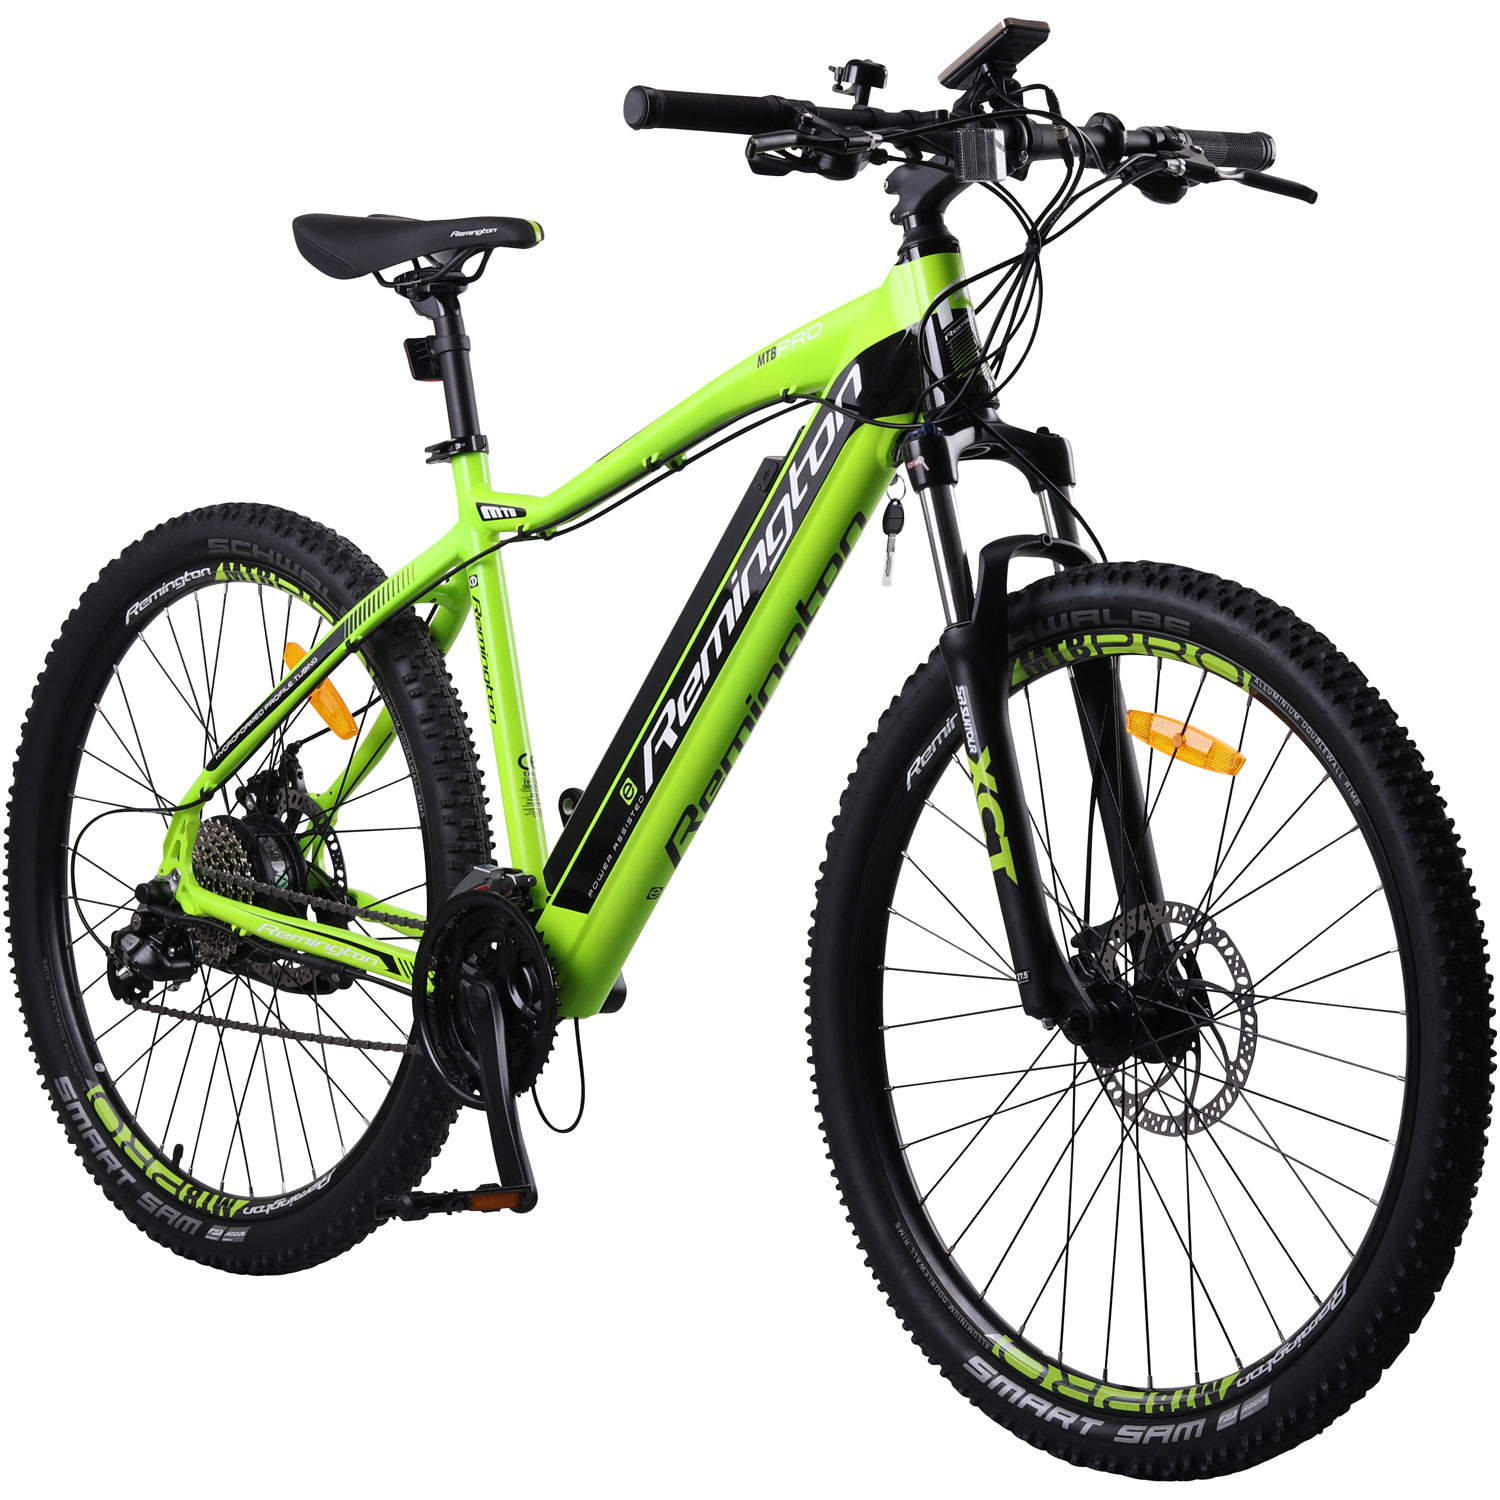 remington rear drive 27 5 zoll mtb e bike mountainbike. Black Bedroom Furniture Sets. Home Design Ideas